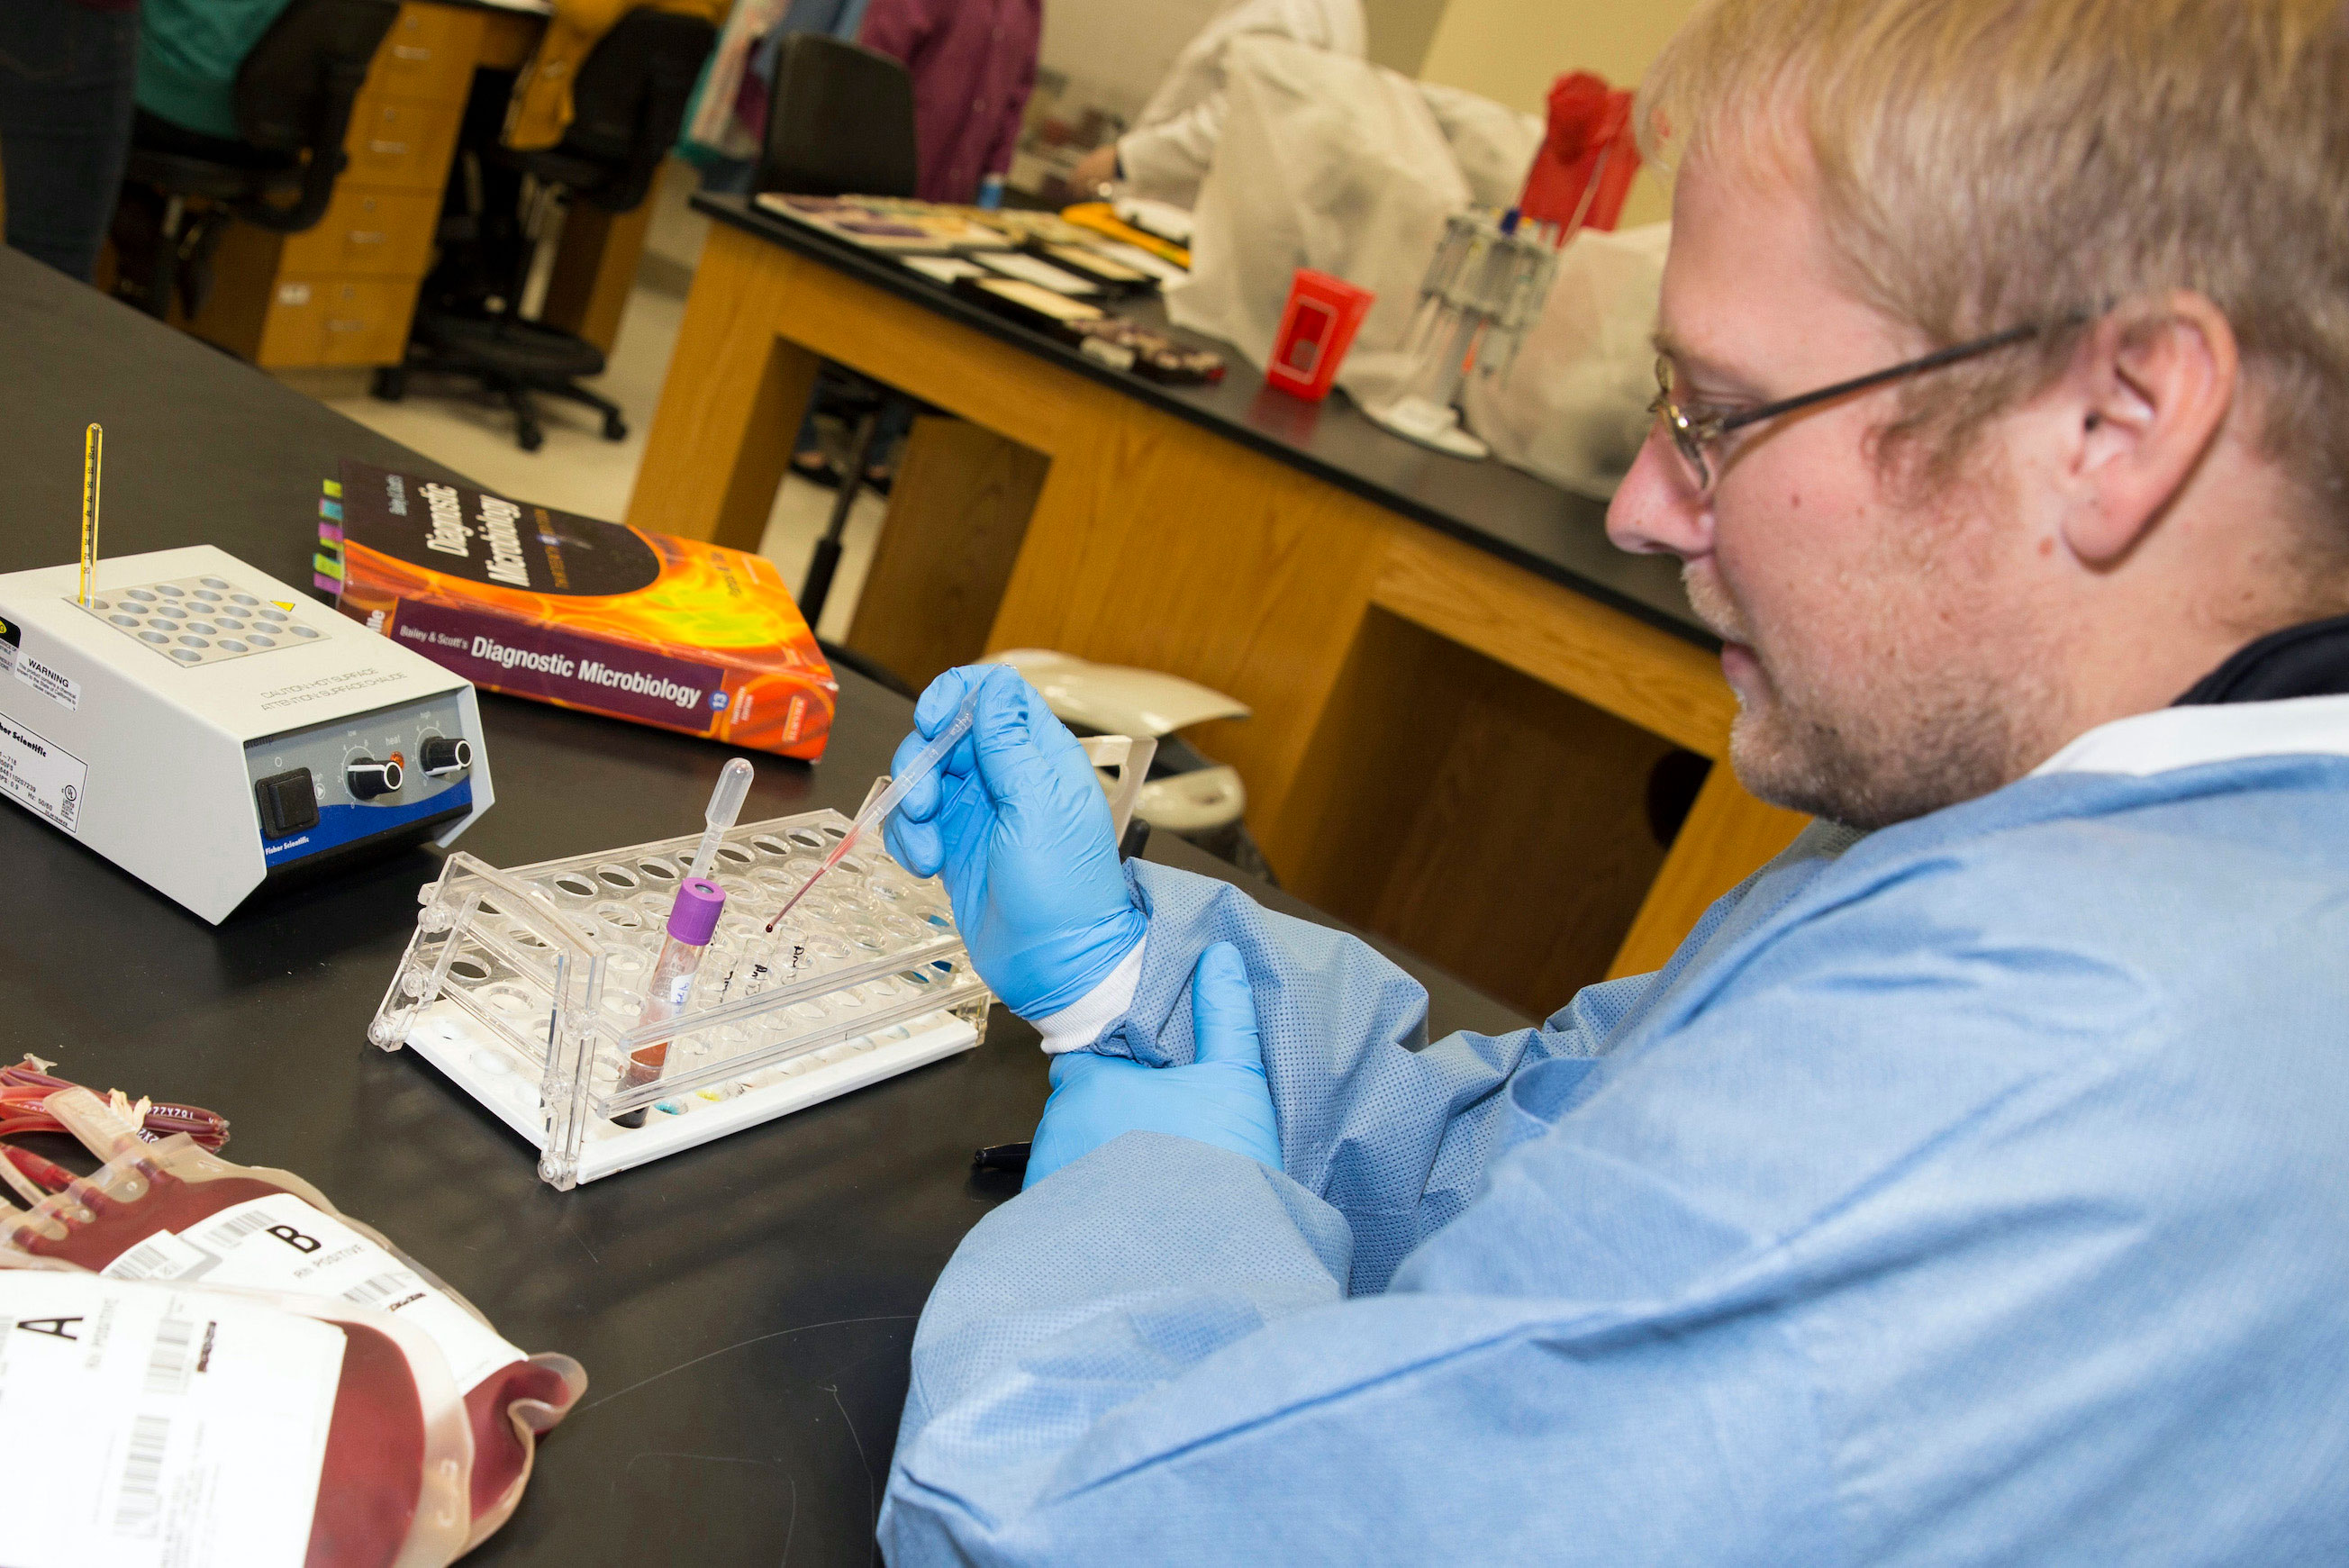 Medical Laboratory Science student working with samples in lab